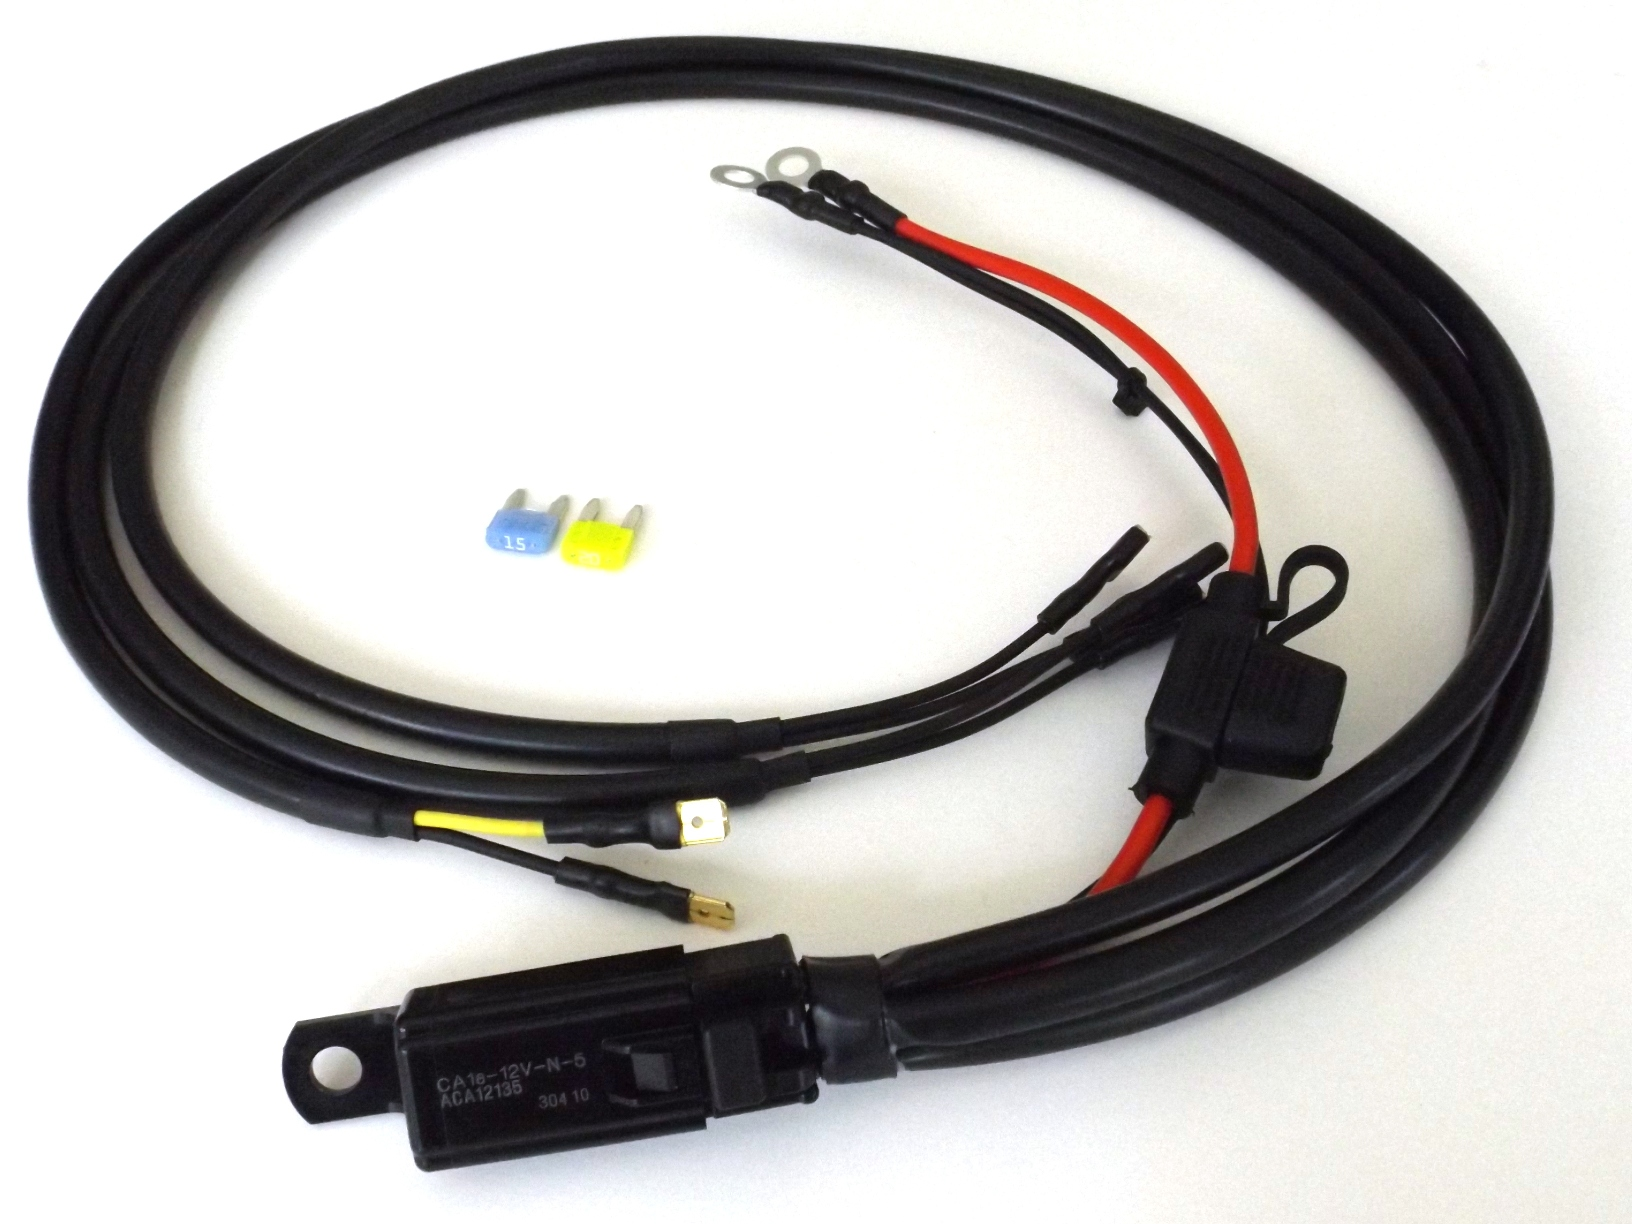 Motorcycle horn relay harness kit for dual horns motorcycle horn relay kits EZ Wiring Harness Diagram Chevy at bayanpartner.co